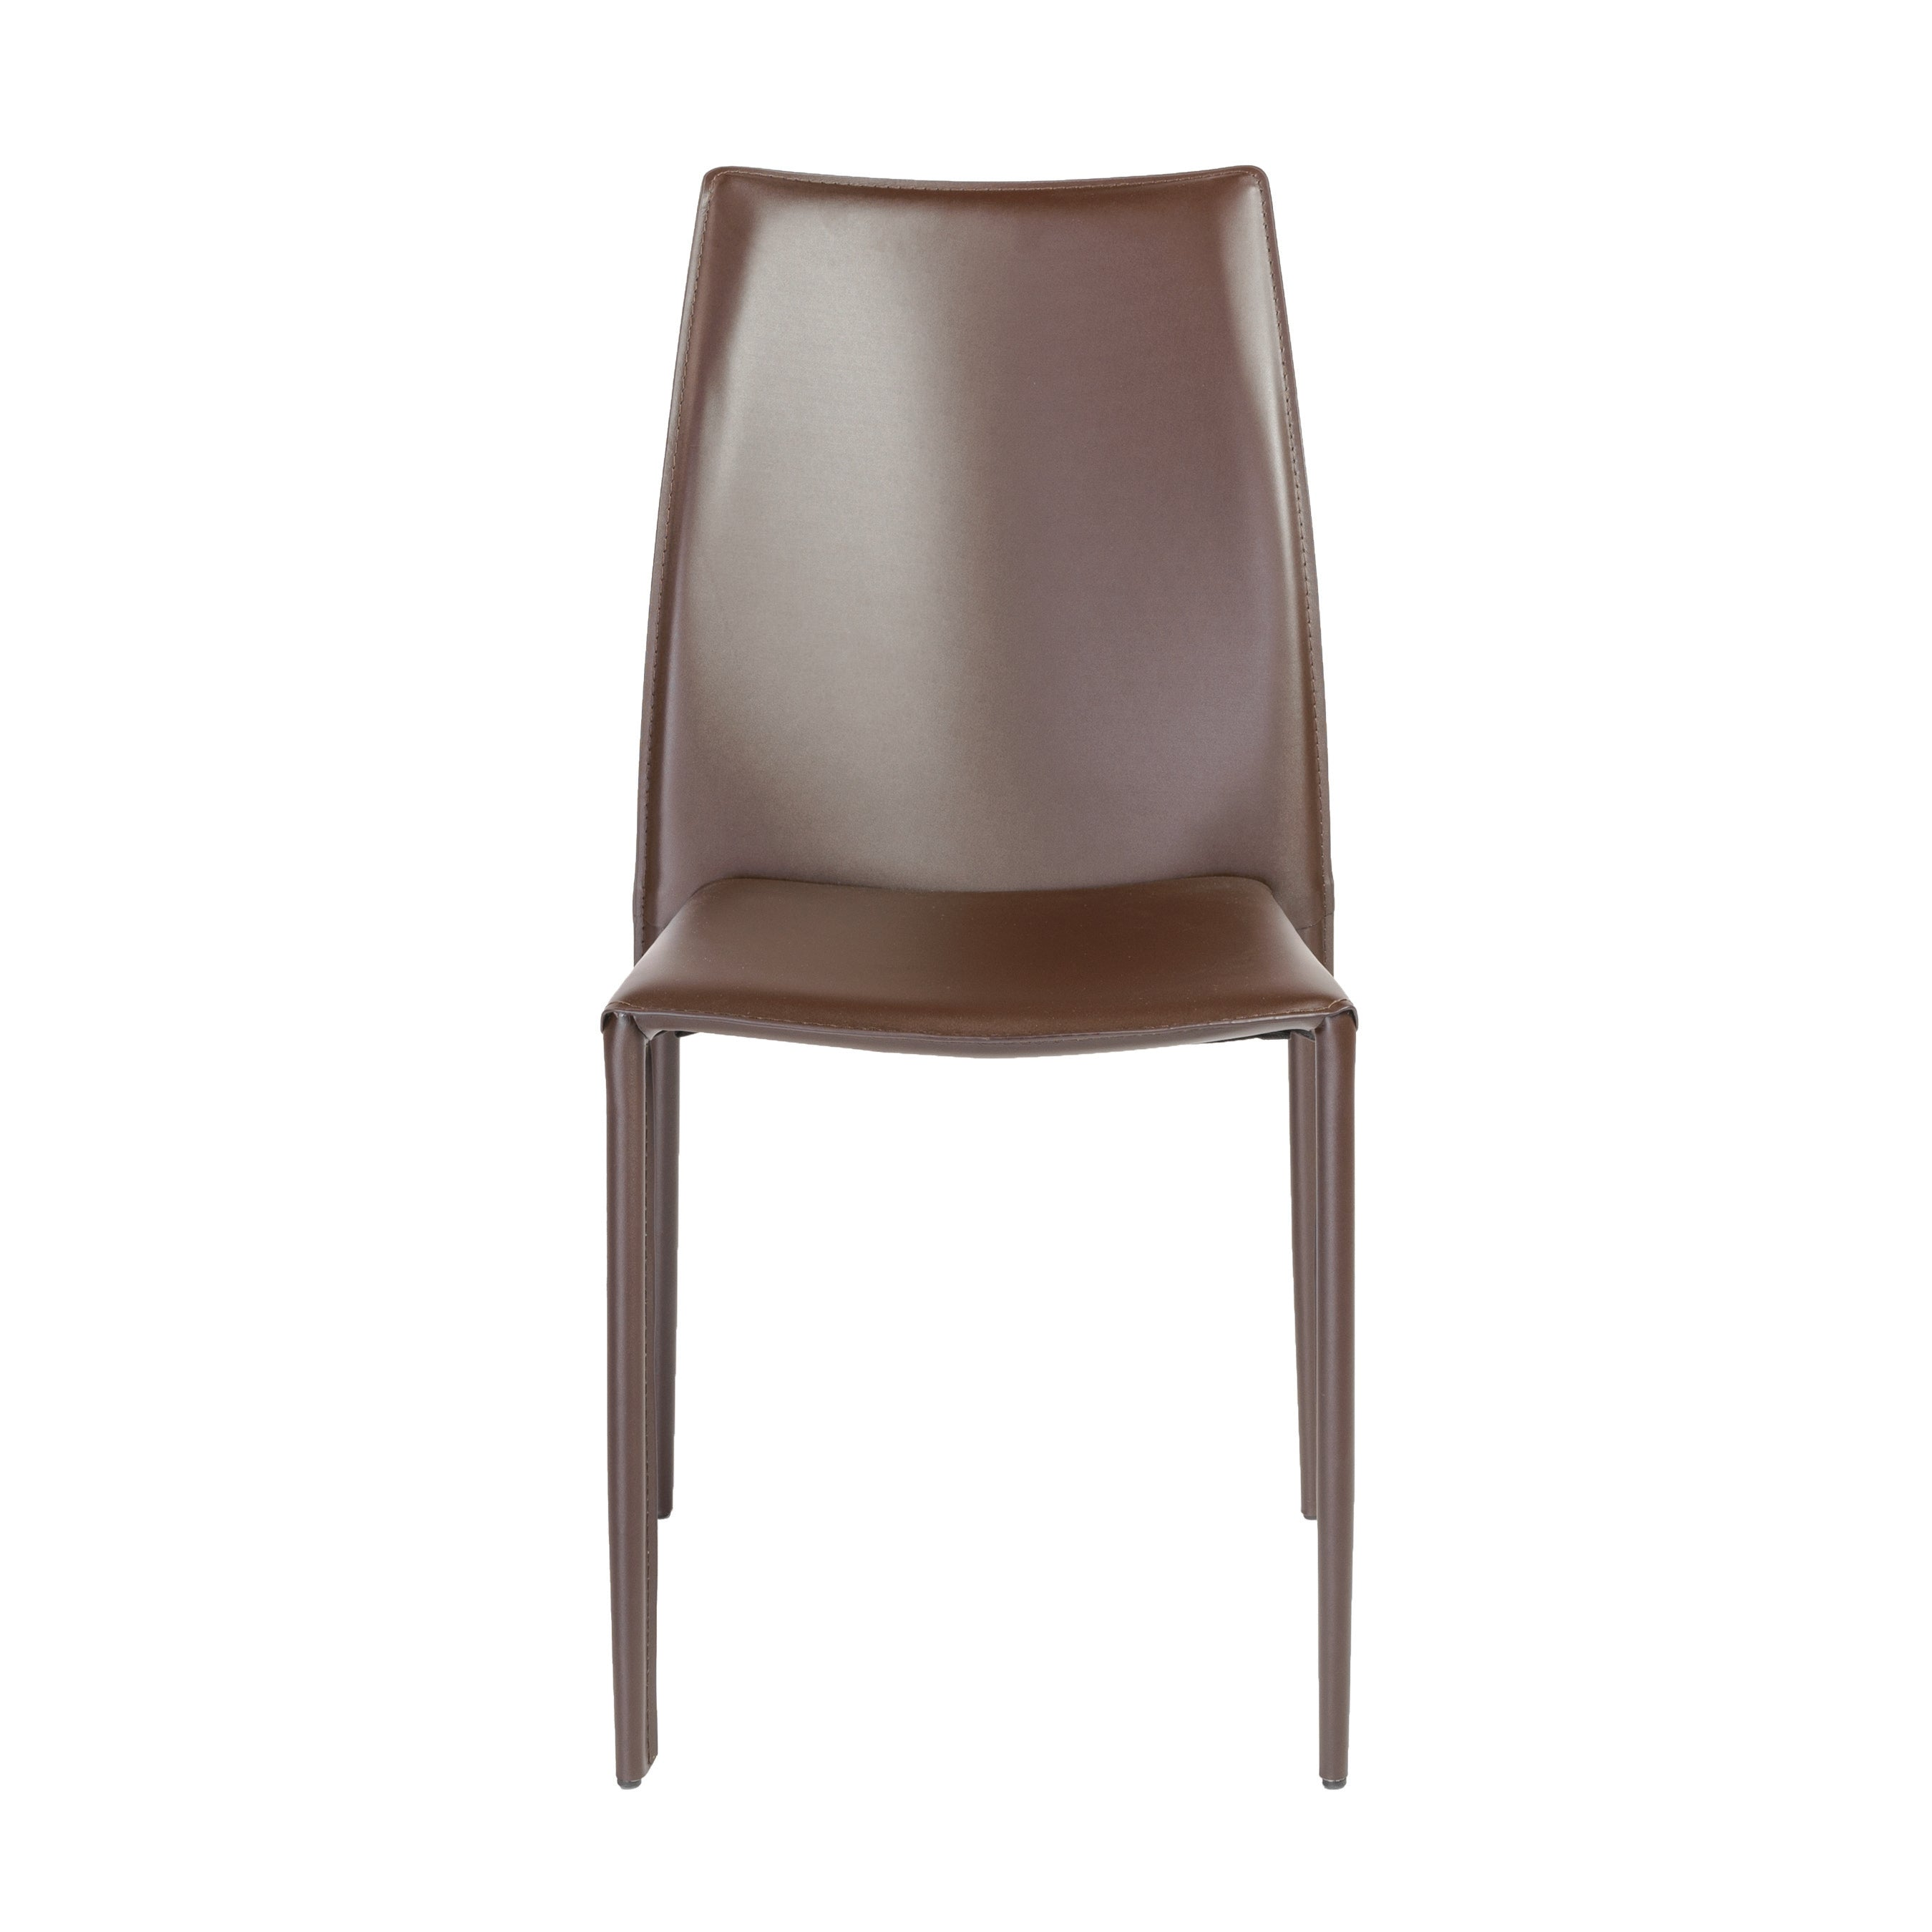 Stylish Guest or Conference Chairs of Brown Regenerated Leather (Set of 4)